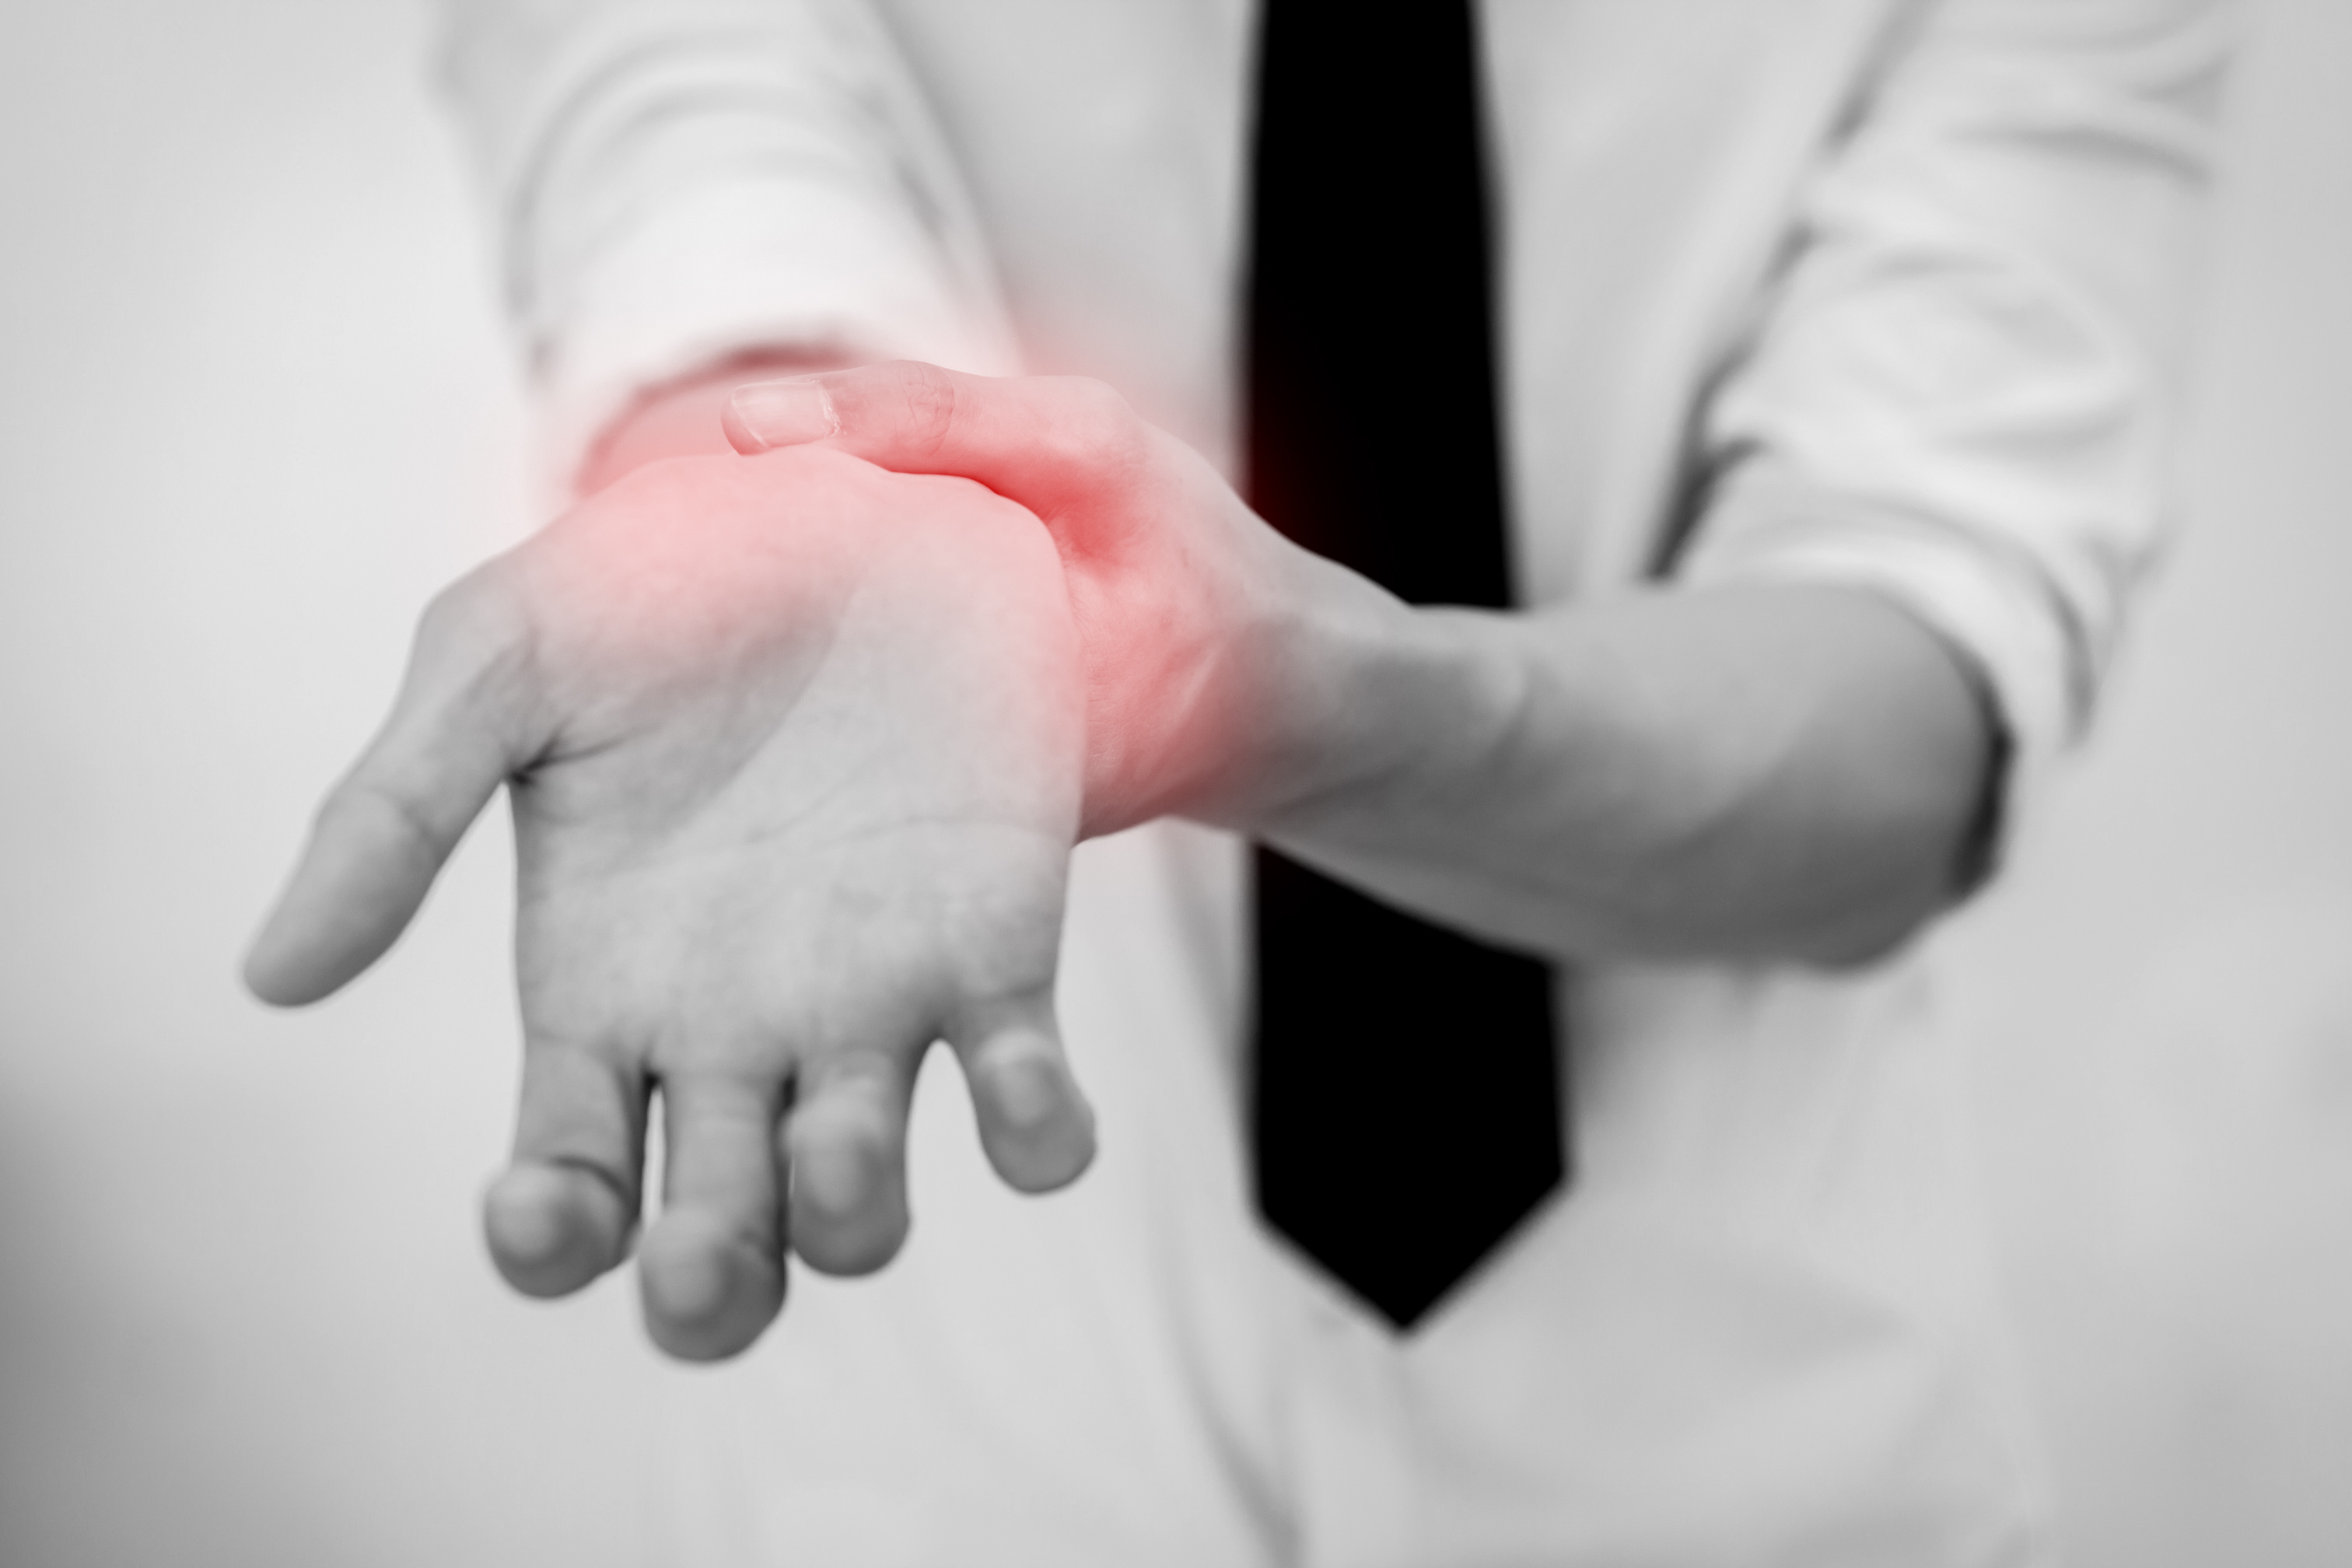 Chiropractic care for a wrist injury